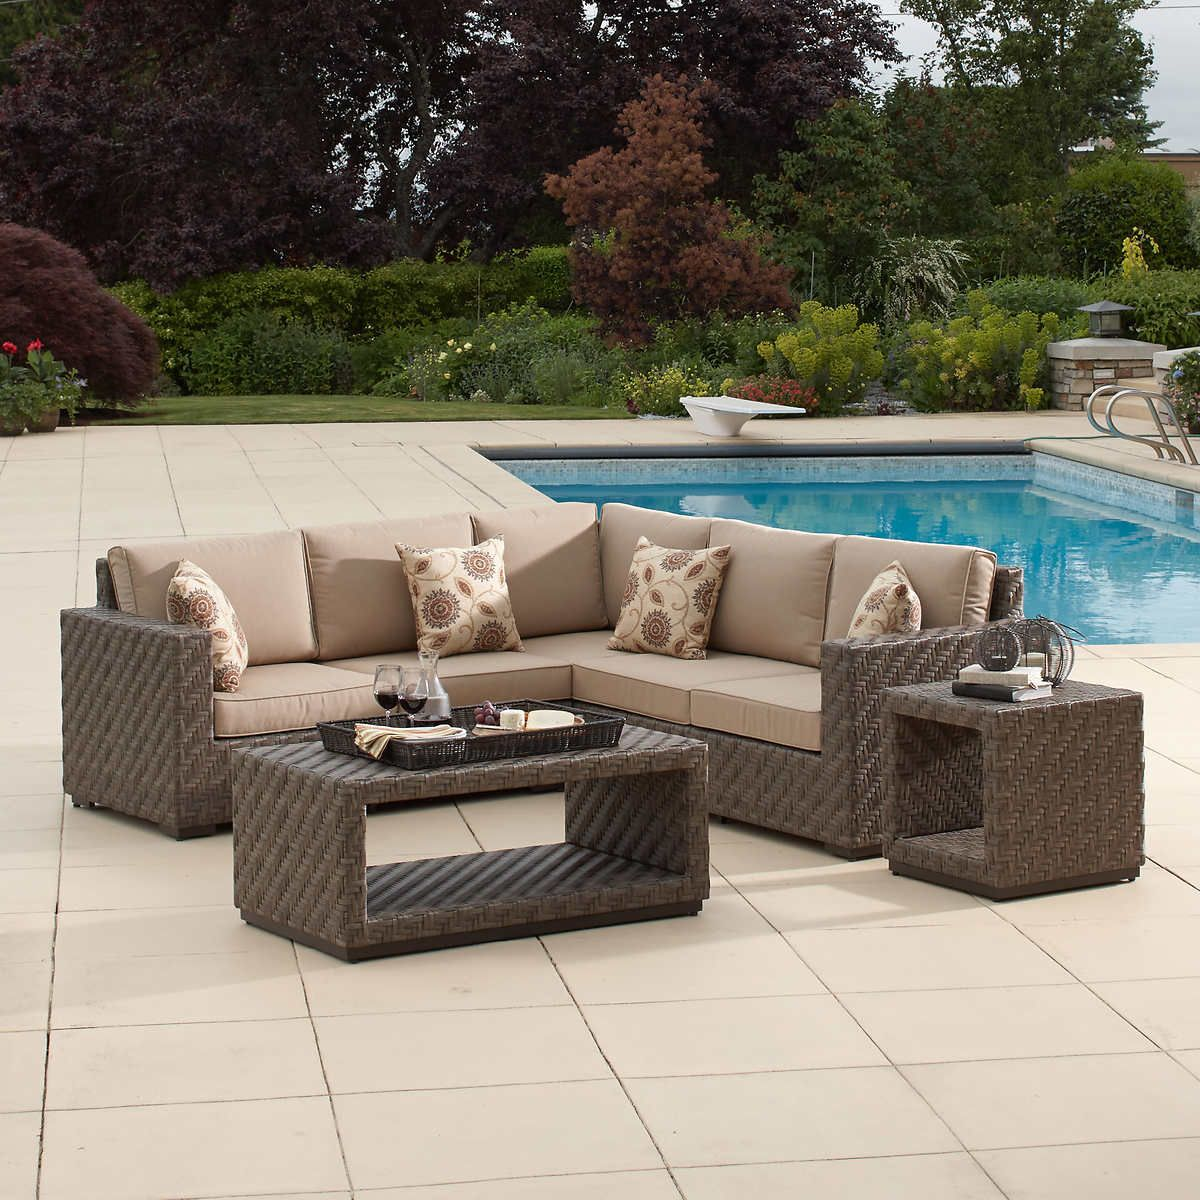 wicker garden cushion circle diy walmart beautify open sofa size sofas patio to dining covers of set outdoor furniture for your cheap dimensions sectional full design area